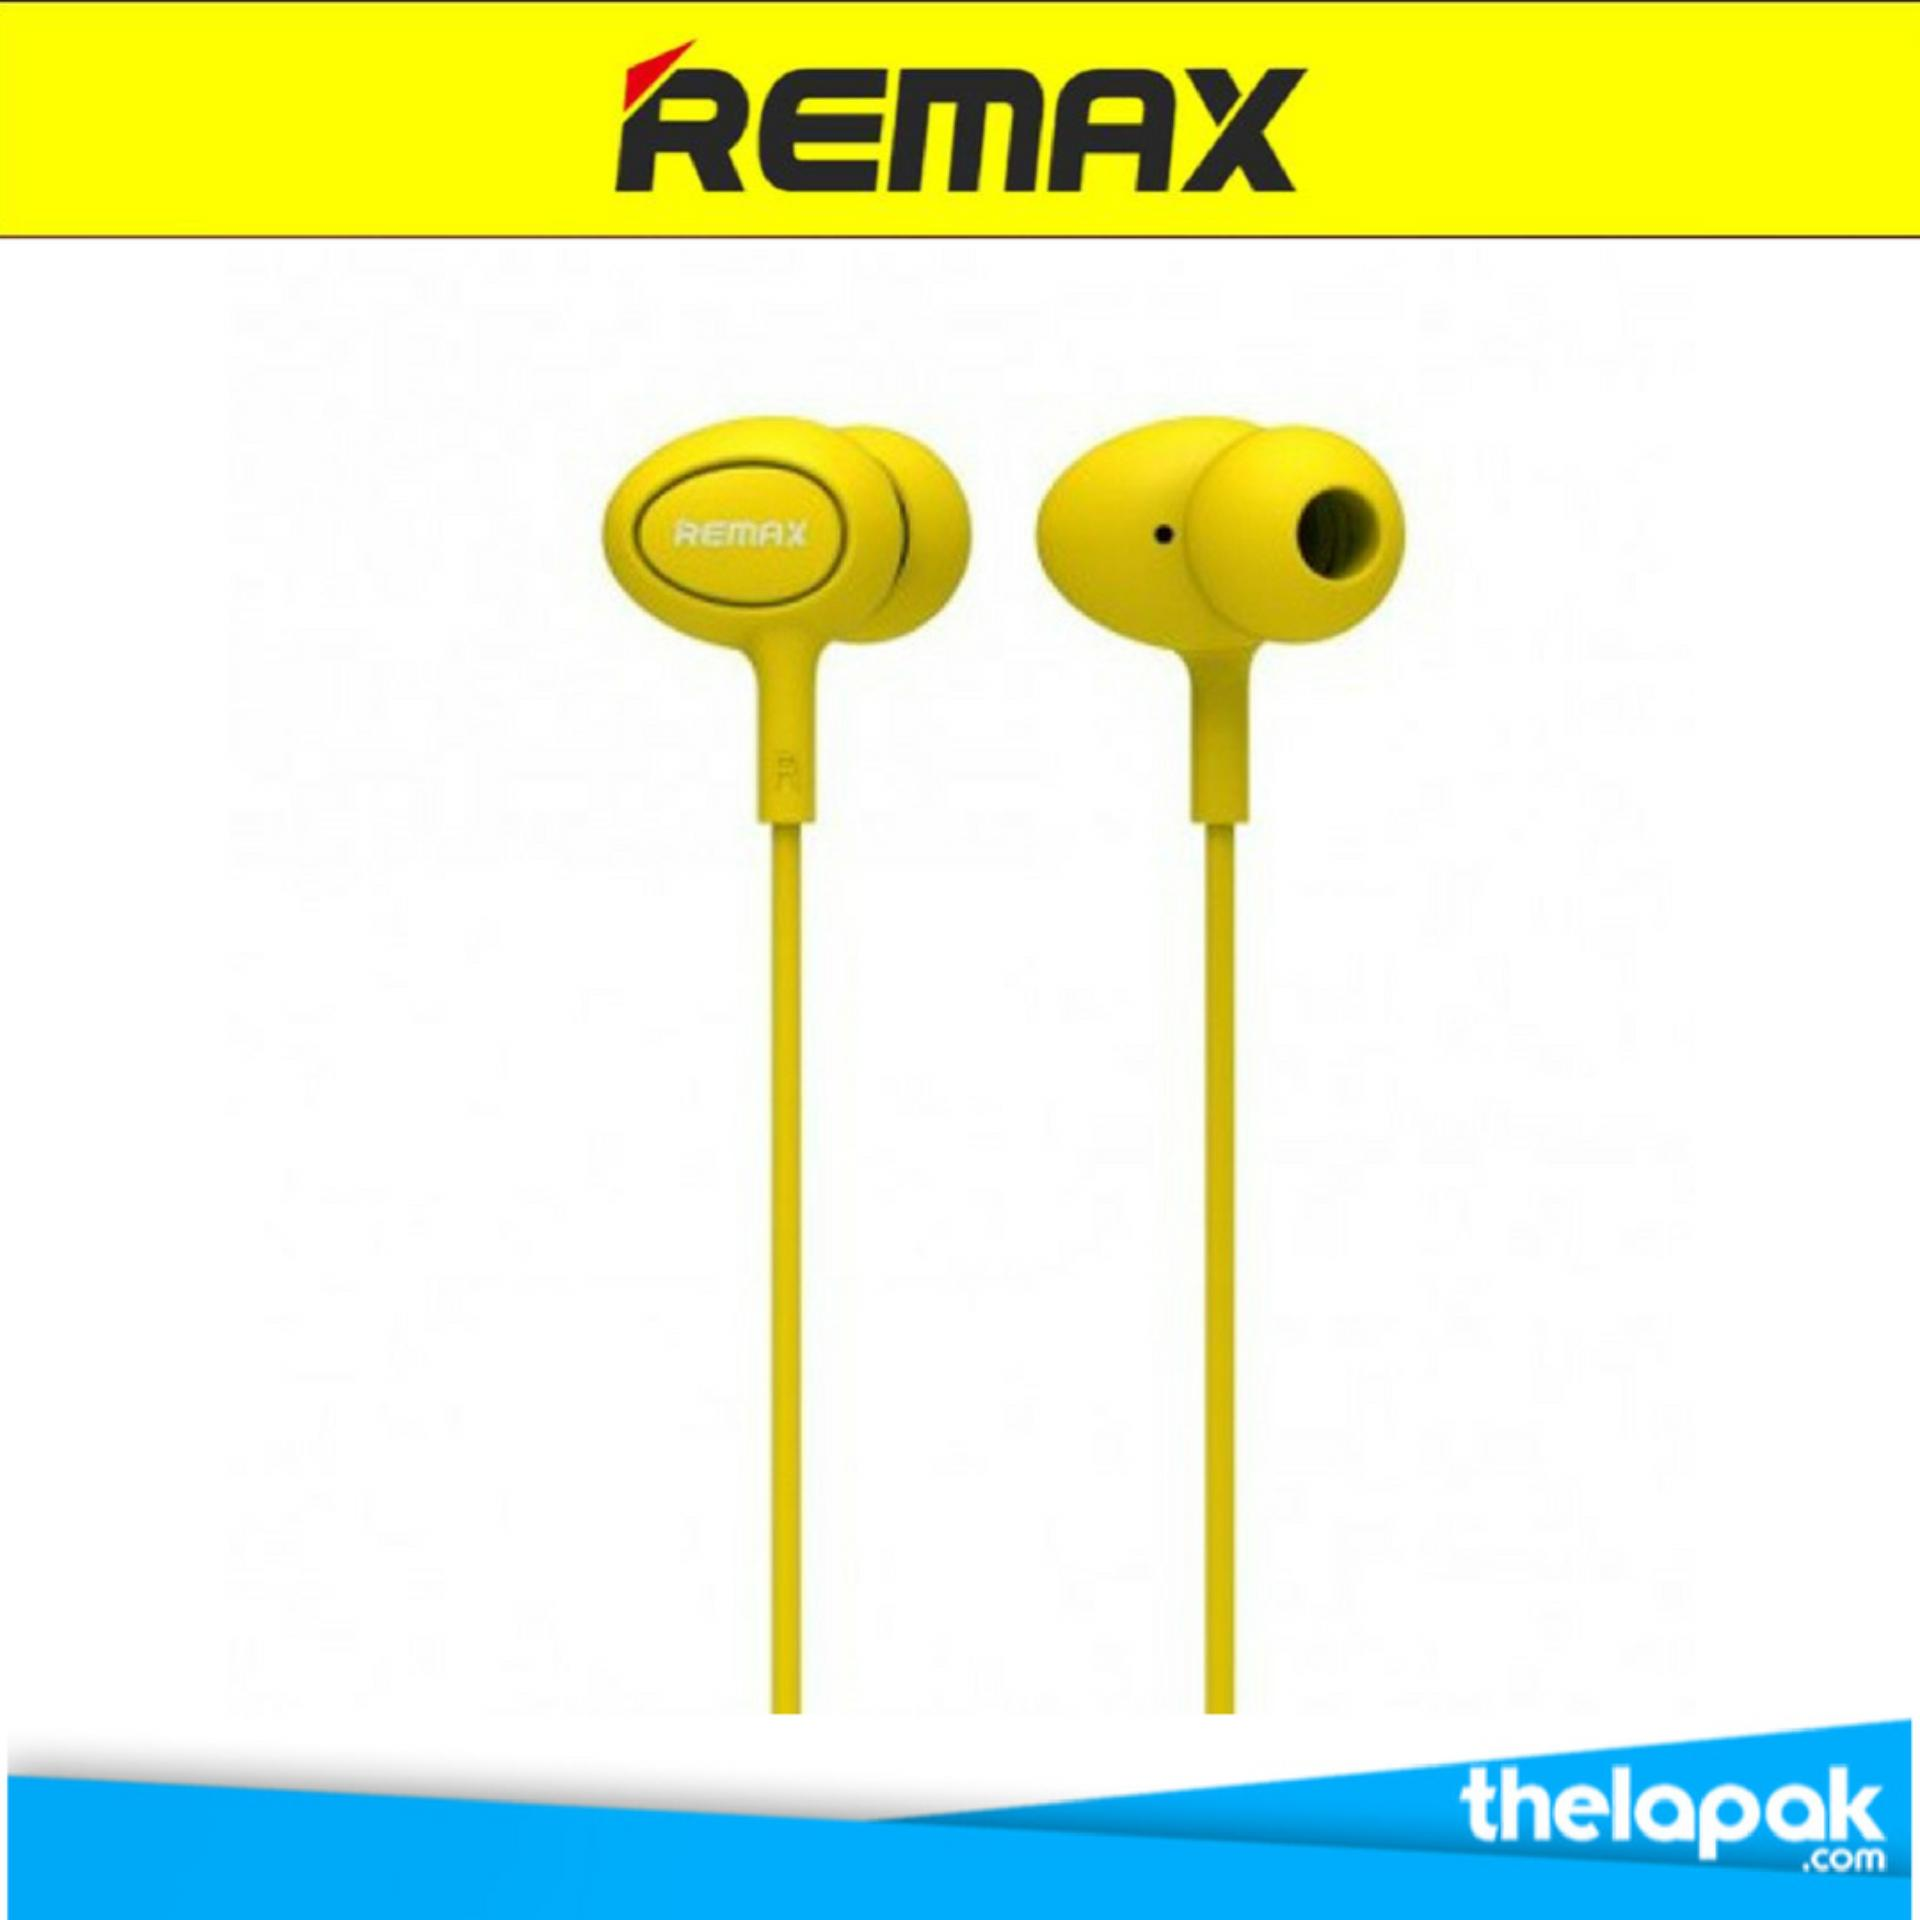 Obral Remax Earphone Rm515 Headset Kuning Murah